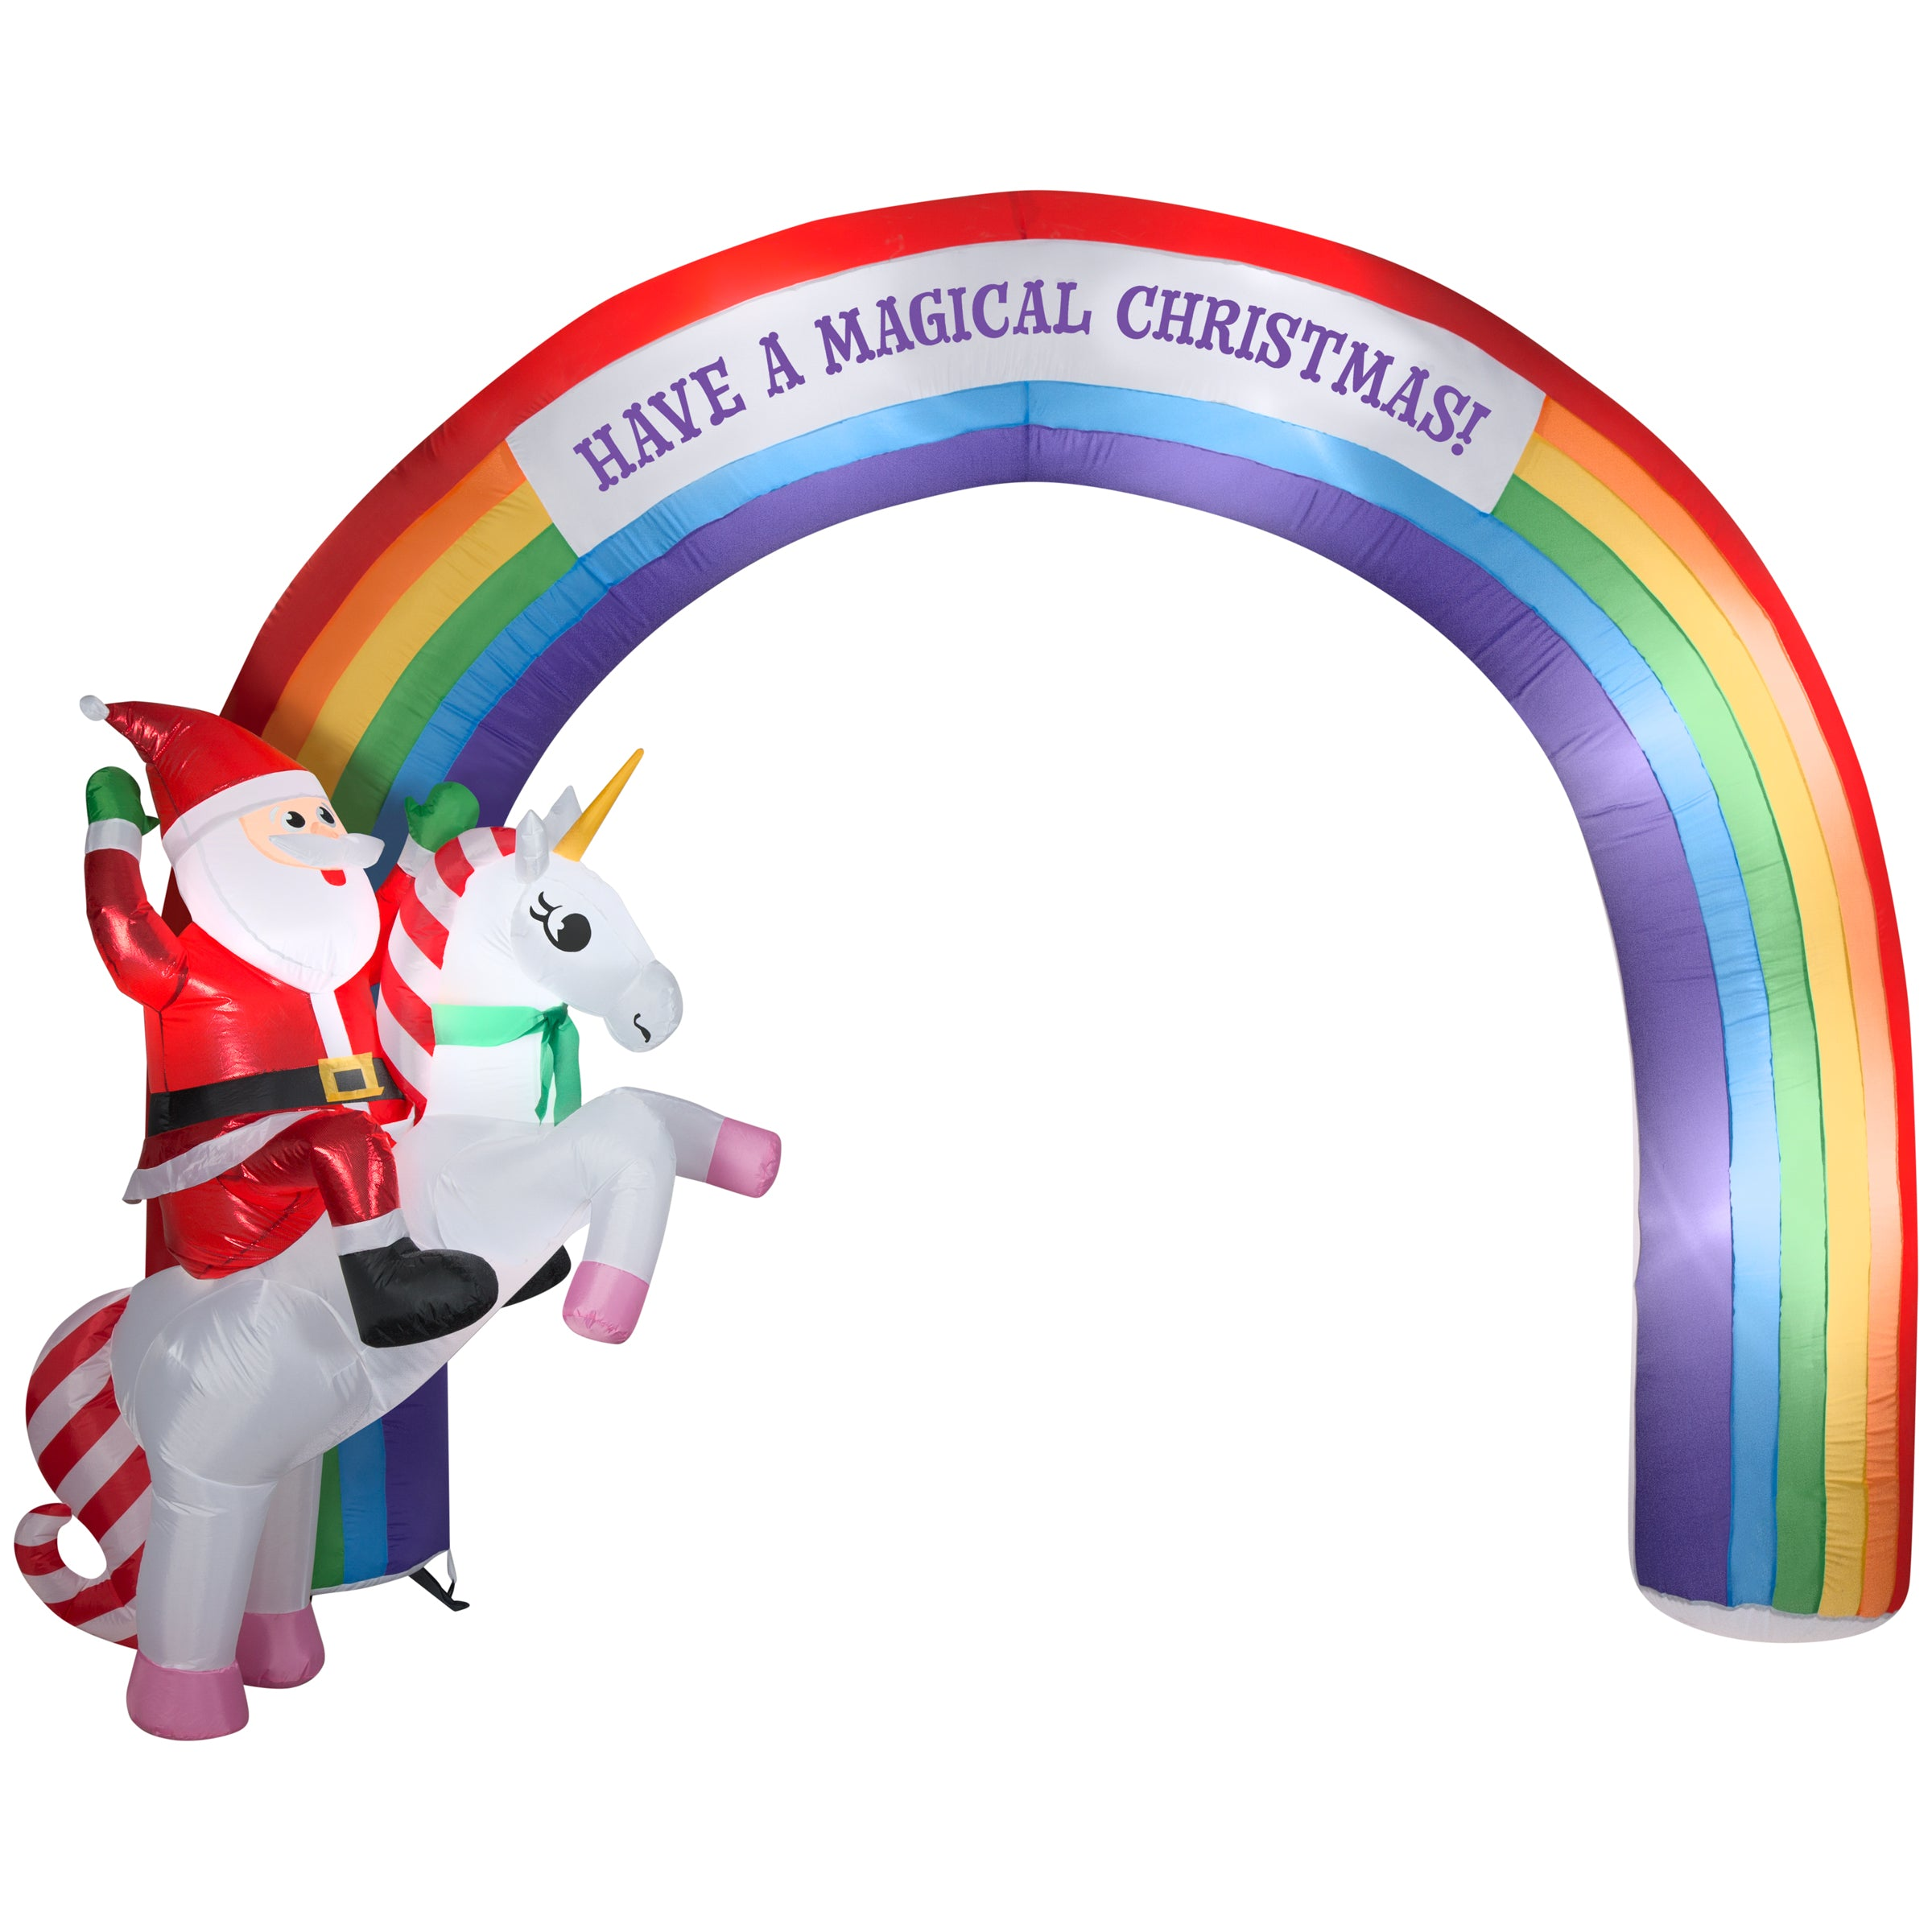 9.5' Airblown Inflatable Archway Mixed Media Unicorn Rainbow